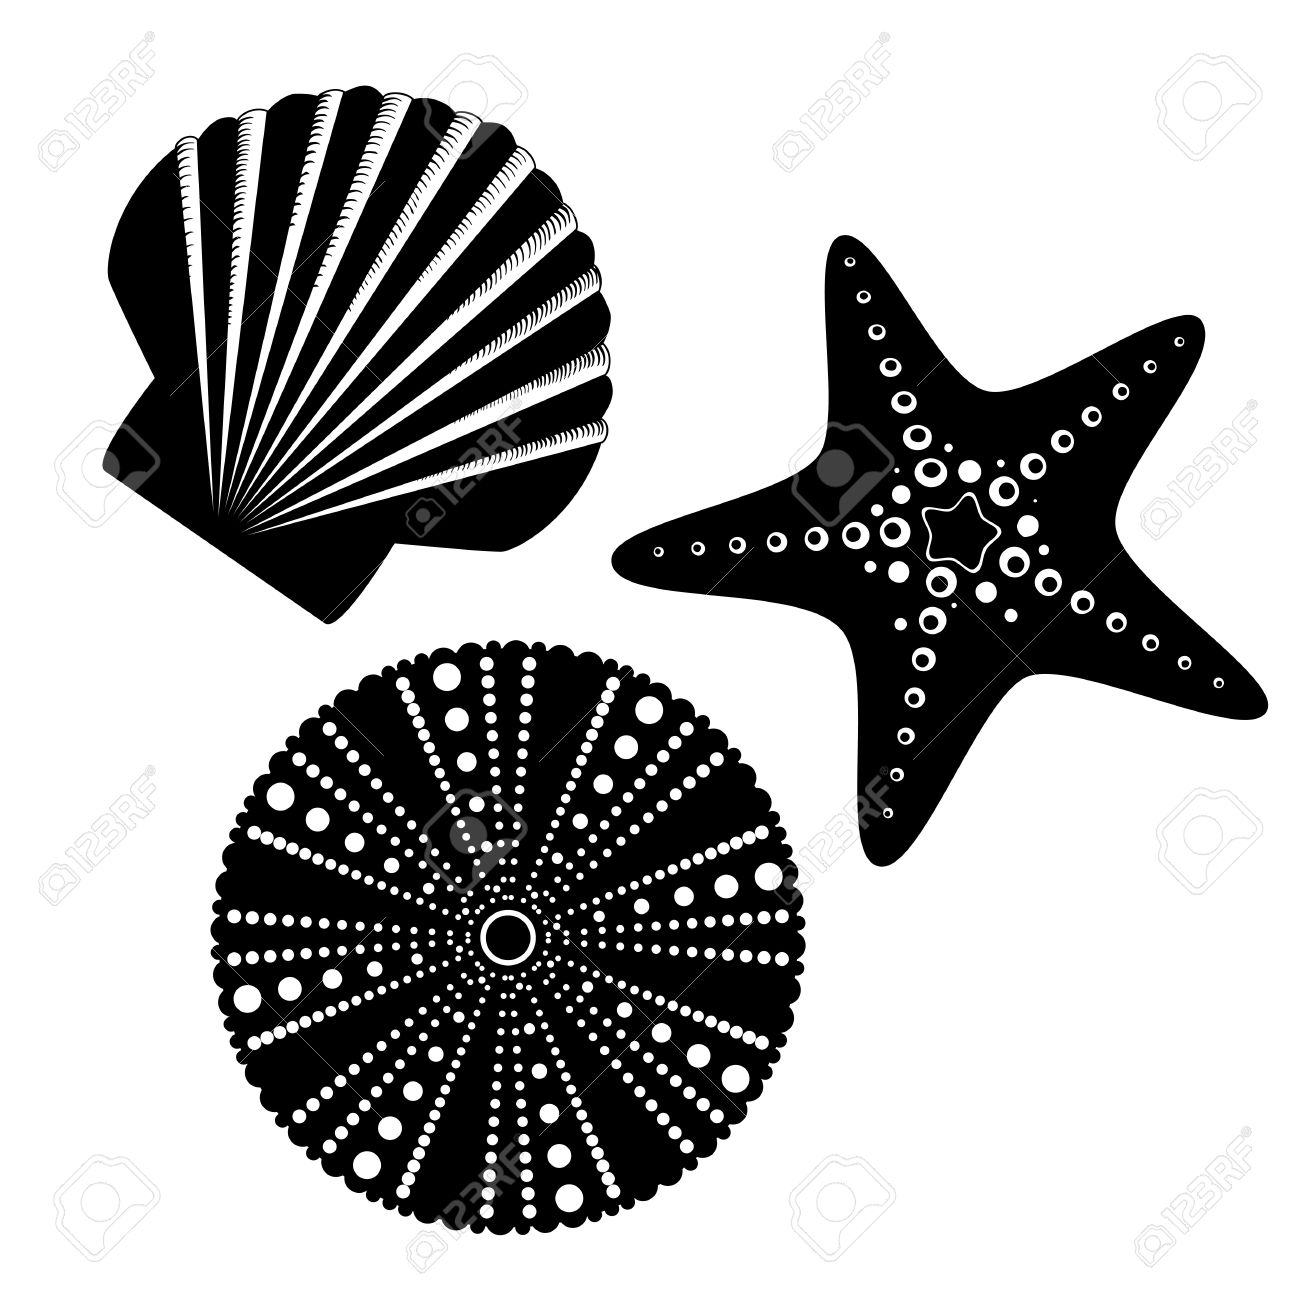 starfish clipart silhouette - Clipground for Starfish Clipart Black And White  579cpg